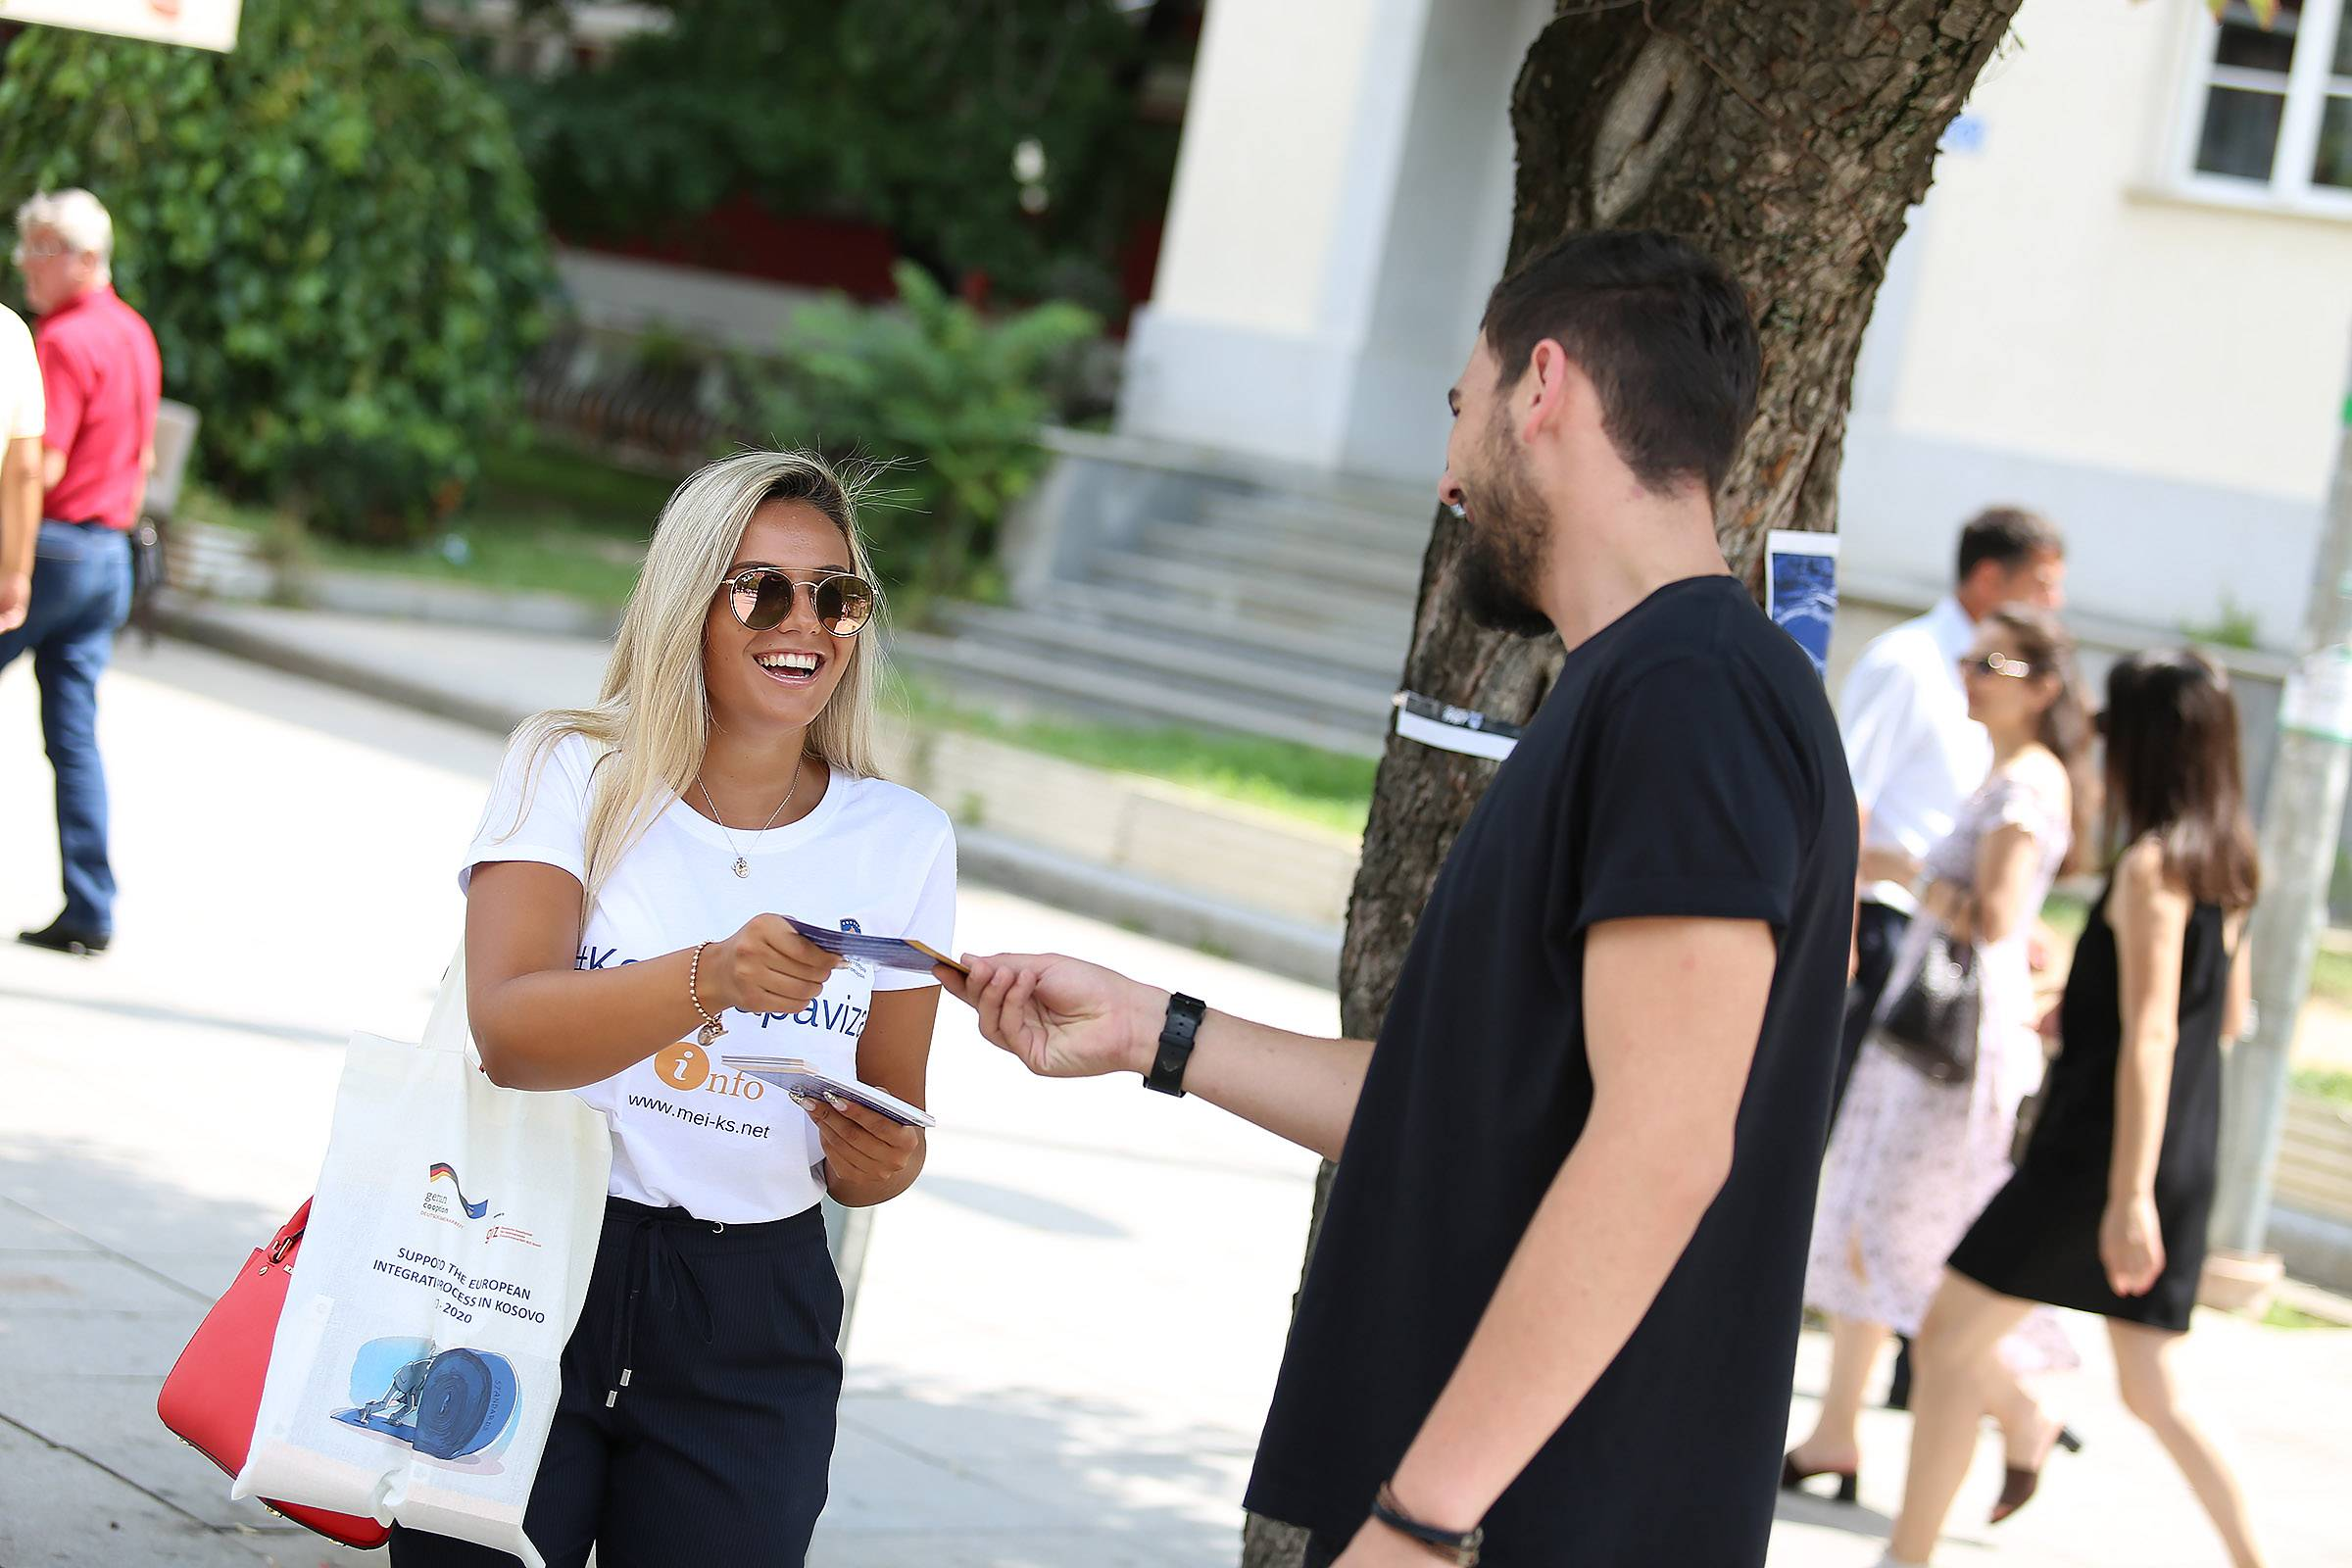 Information campaign regarding visa liberalization commenced in the Mother Teresa Square